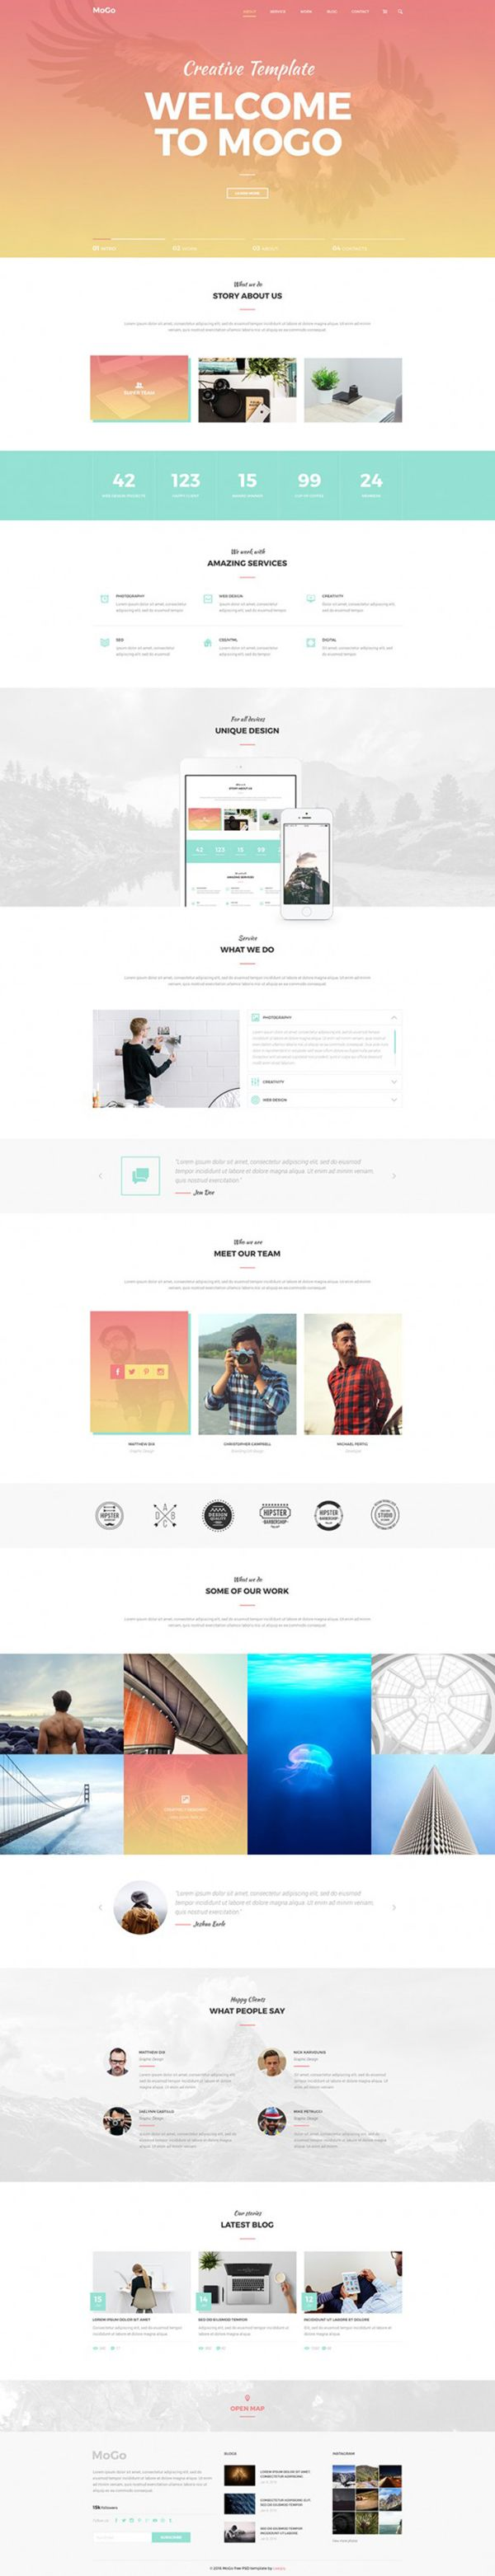 the mogo photoshop website template design bies the mogo photoshop website template